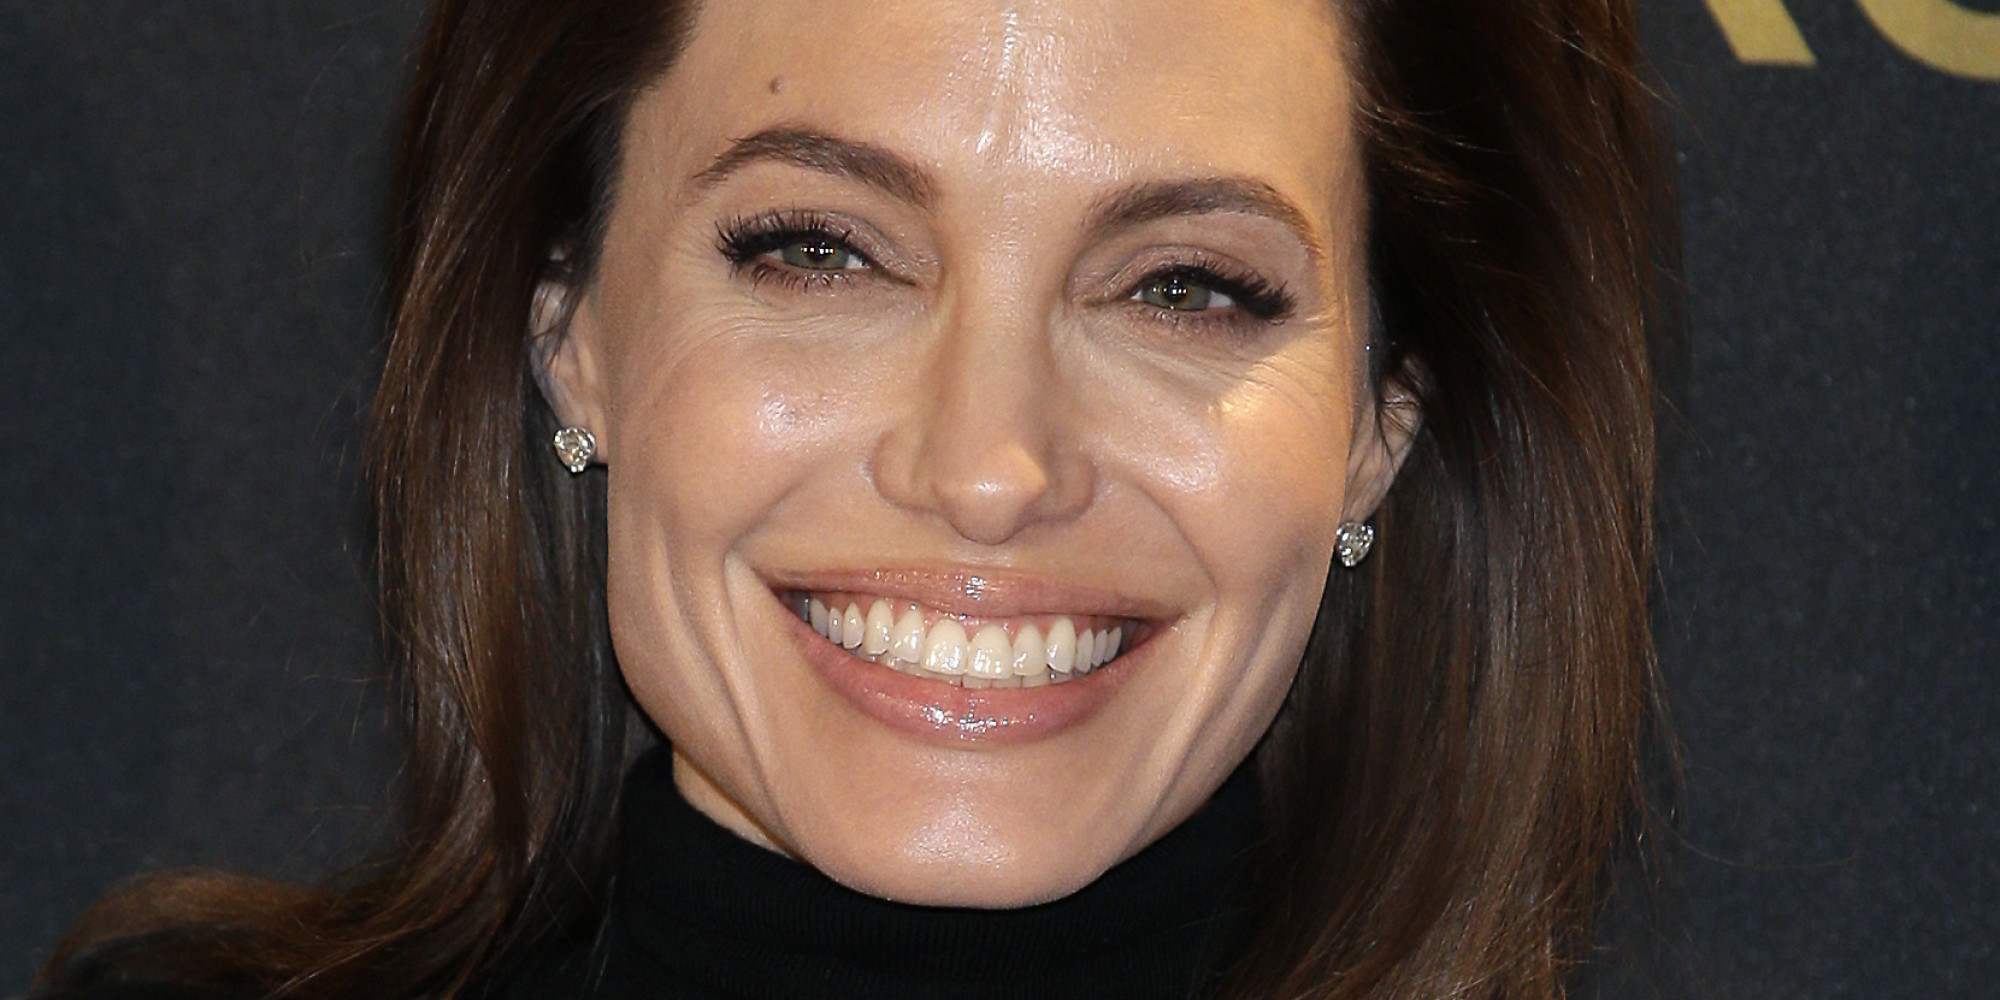 angelina jolie filmangelina jolie 2017, angelina jolie film, angelina jolie young, angelina jolie movies, angelina jolie news, angelina jolie tattoos, angelina jolie kino, angelina jolie 2016, angelina jolie wiki, angelina jolie oscar, angelina jolie facebook, angelina jolie gif, angelina jolie brother, angelina jolie father, angelina jolie tumblr, angelina jolie daughter, angelina jolie filme, angelina jolie дети, angelina jolie insta, angelina jolie age